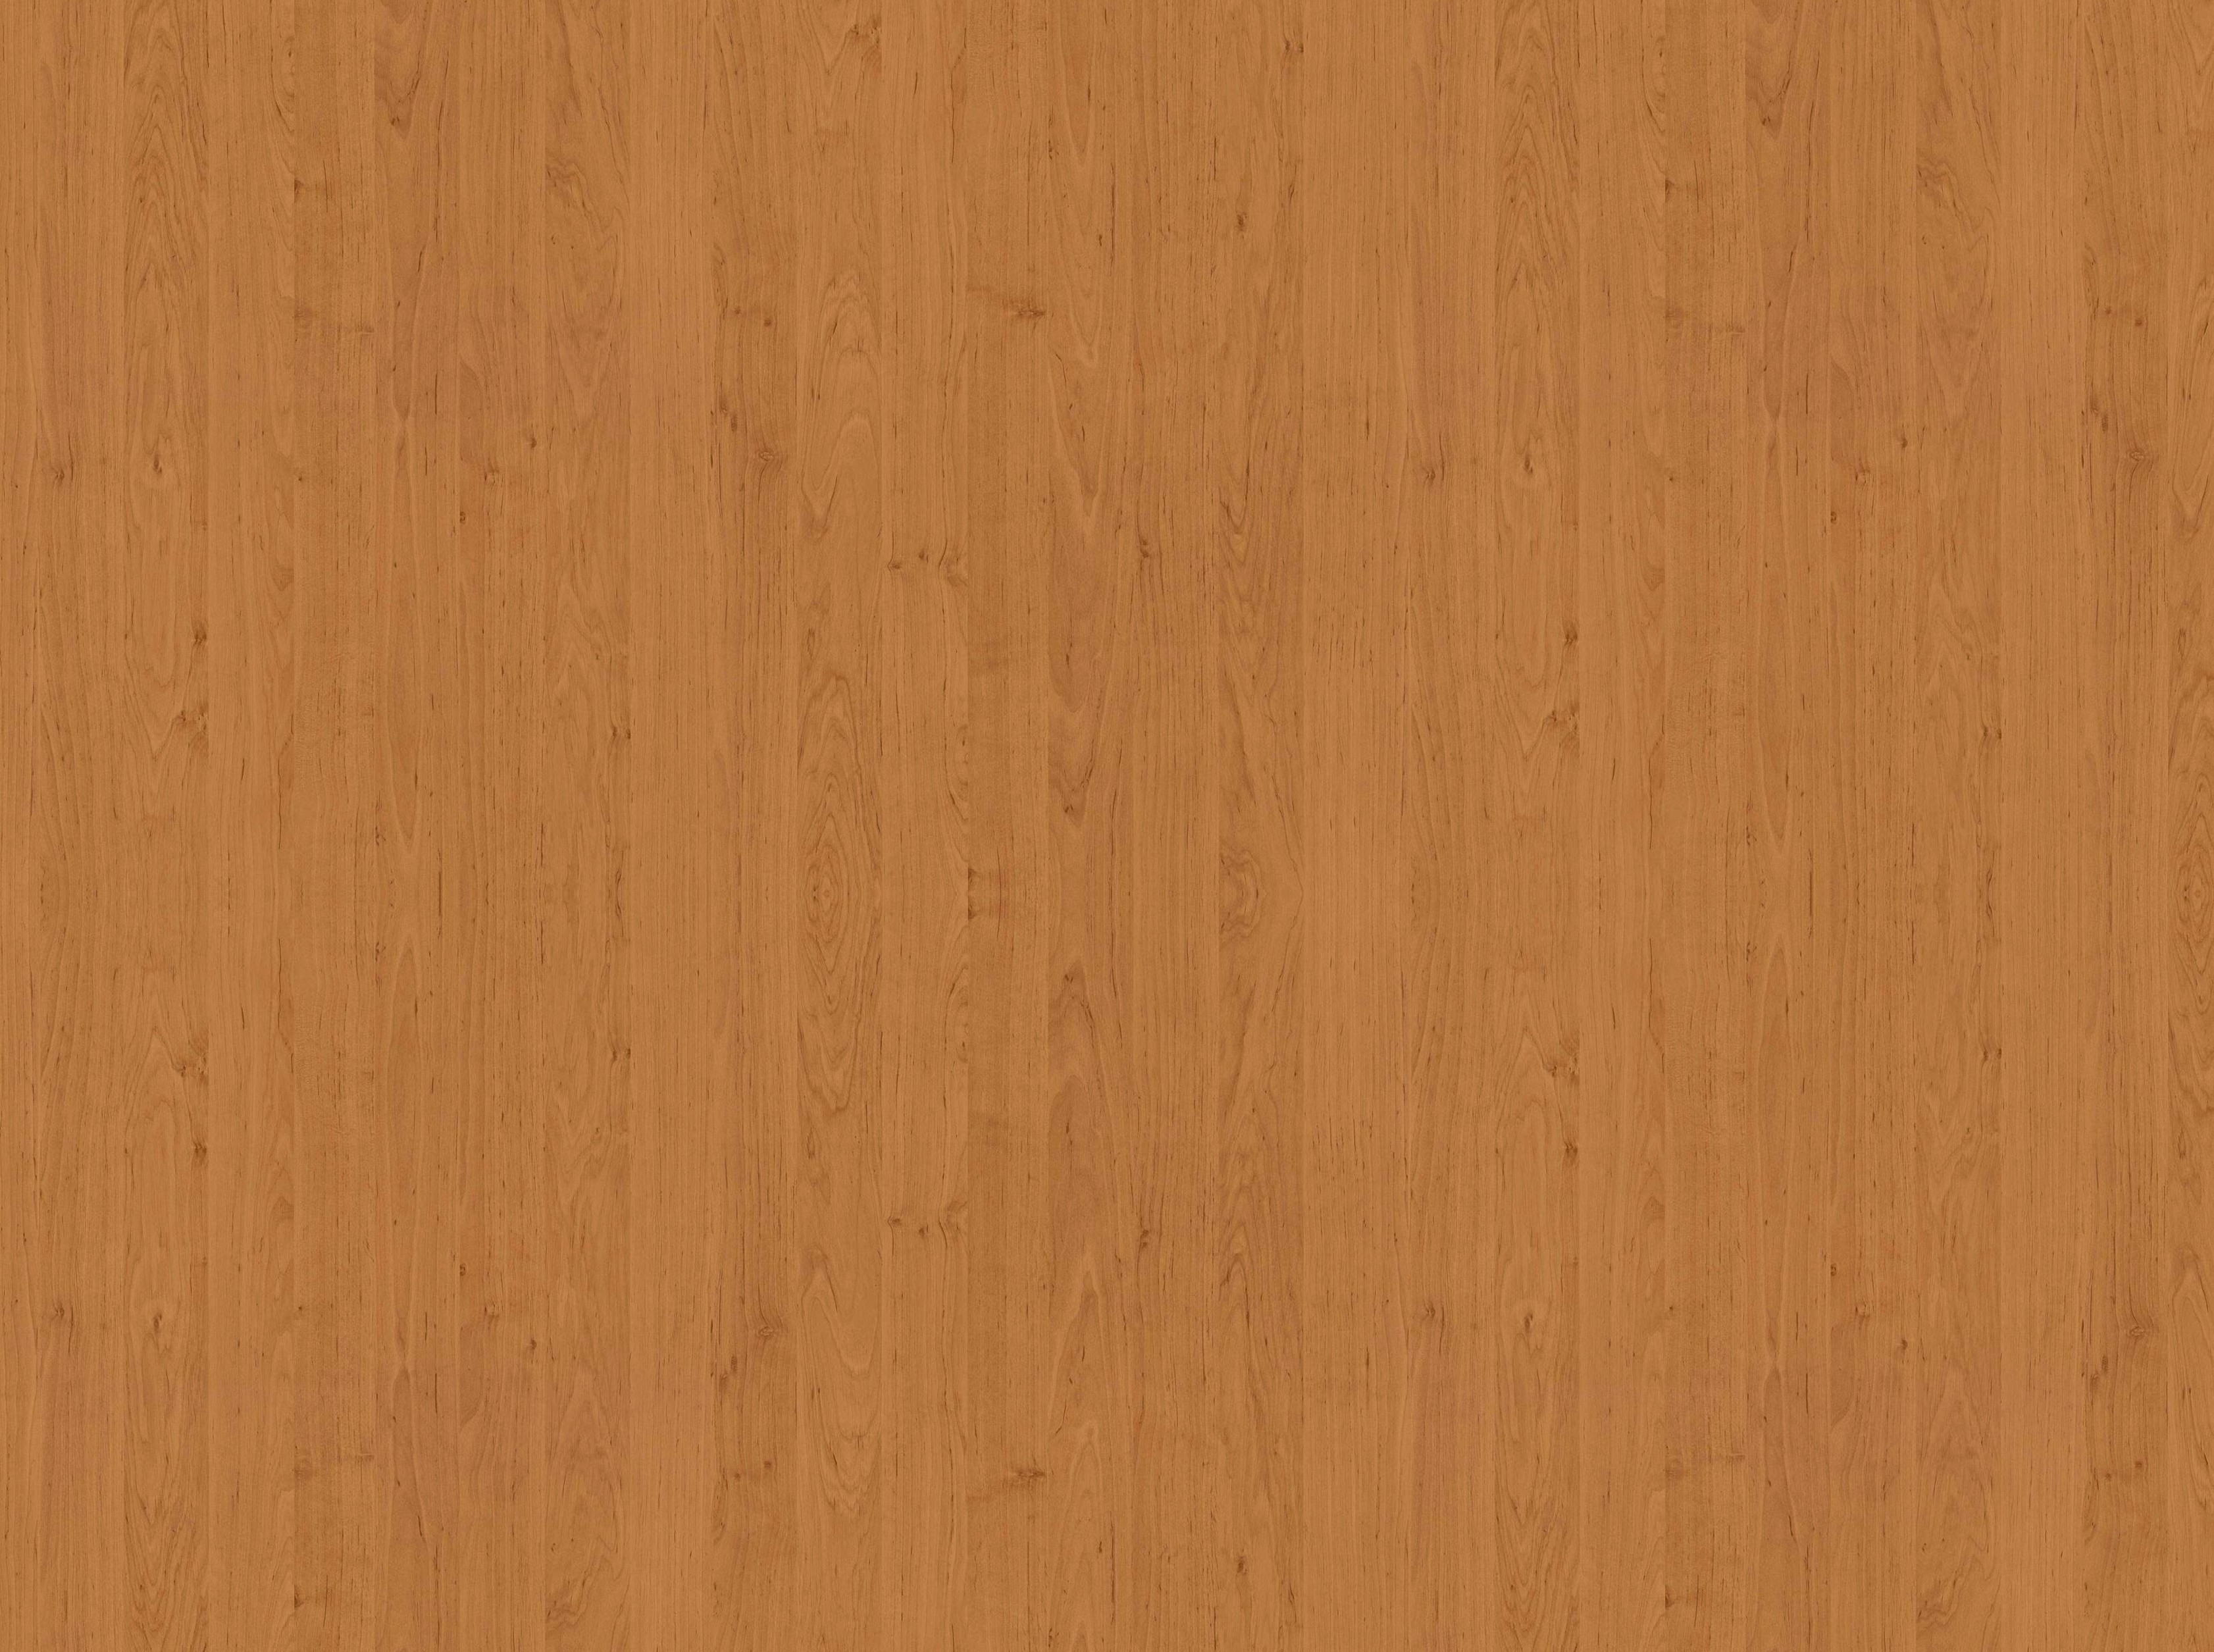 discover textures | Wooddiscover textures